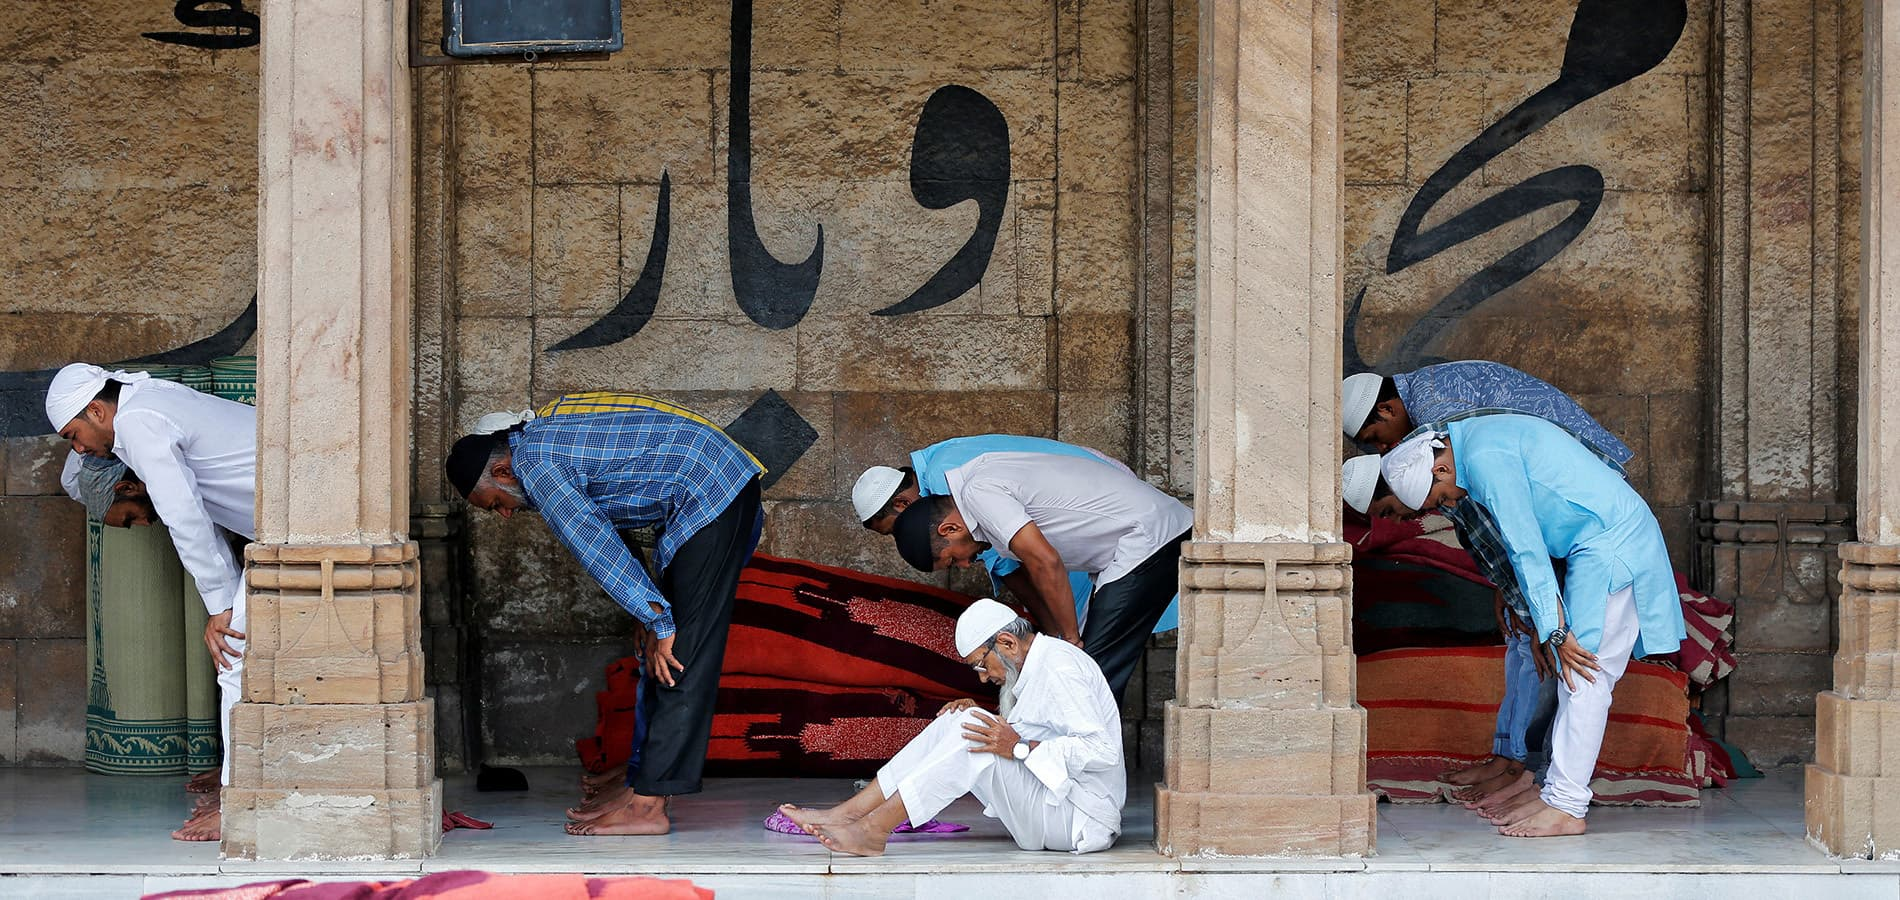 Muslims offer the second Friday prayers of the holy fasting month of Ramadan inside Jama Masjid mosque in Ahmedabad, India, June 9, 2017. REUTERS/Amit Dave